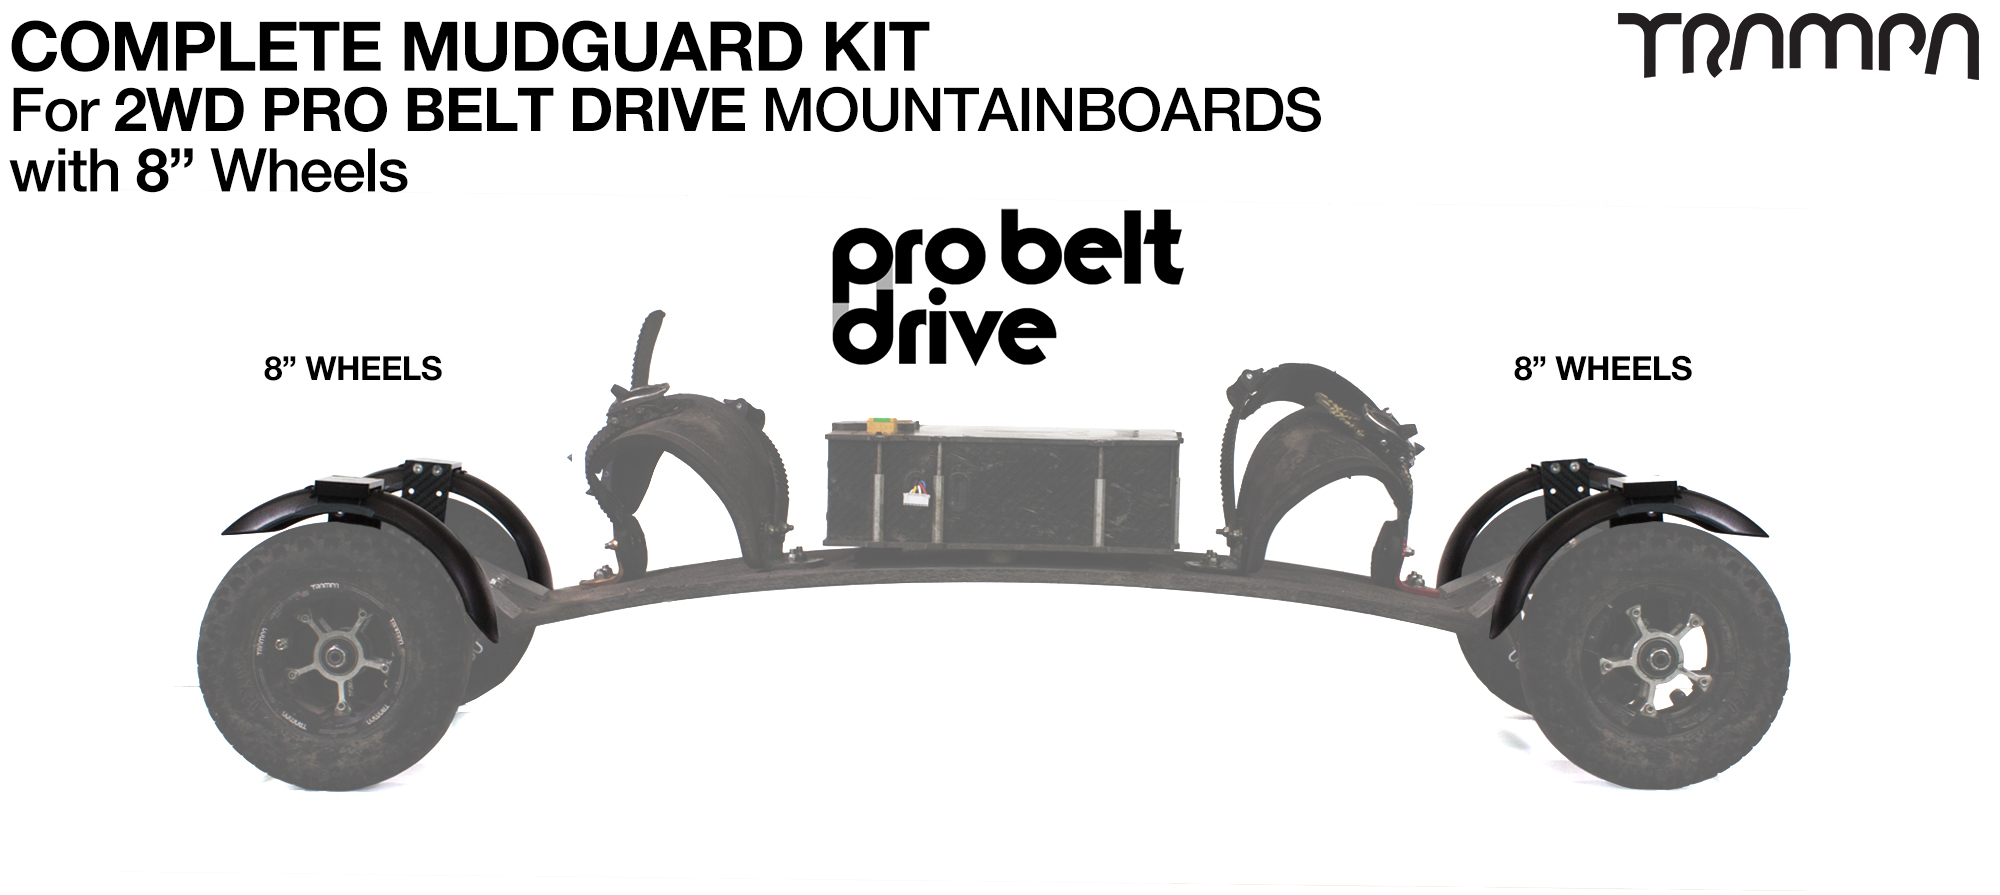 "Full Mudguard Kit for 2WD PRO BELT DRIVE Mountainboards - 8"" Wheels All round"